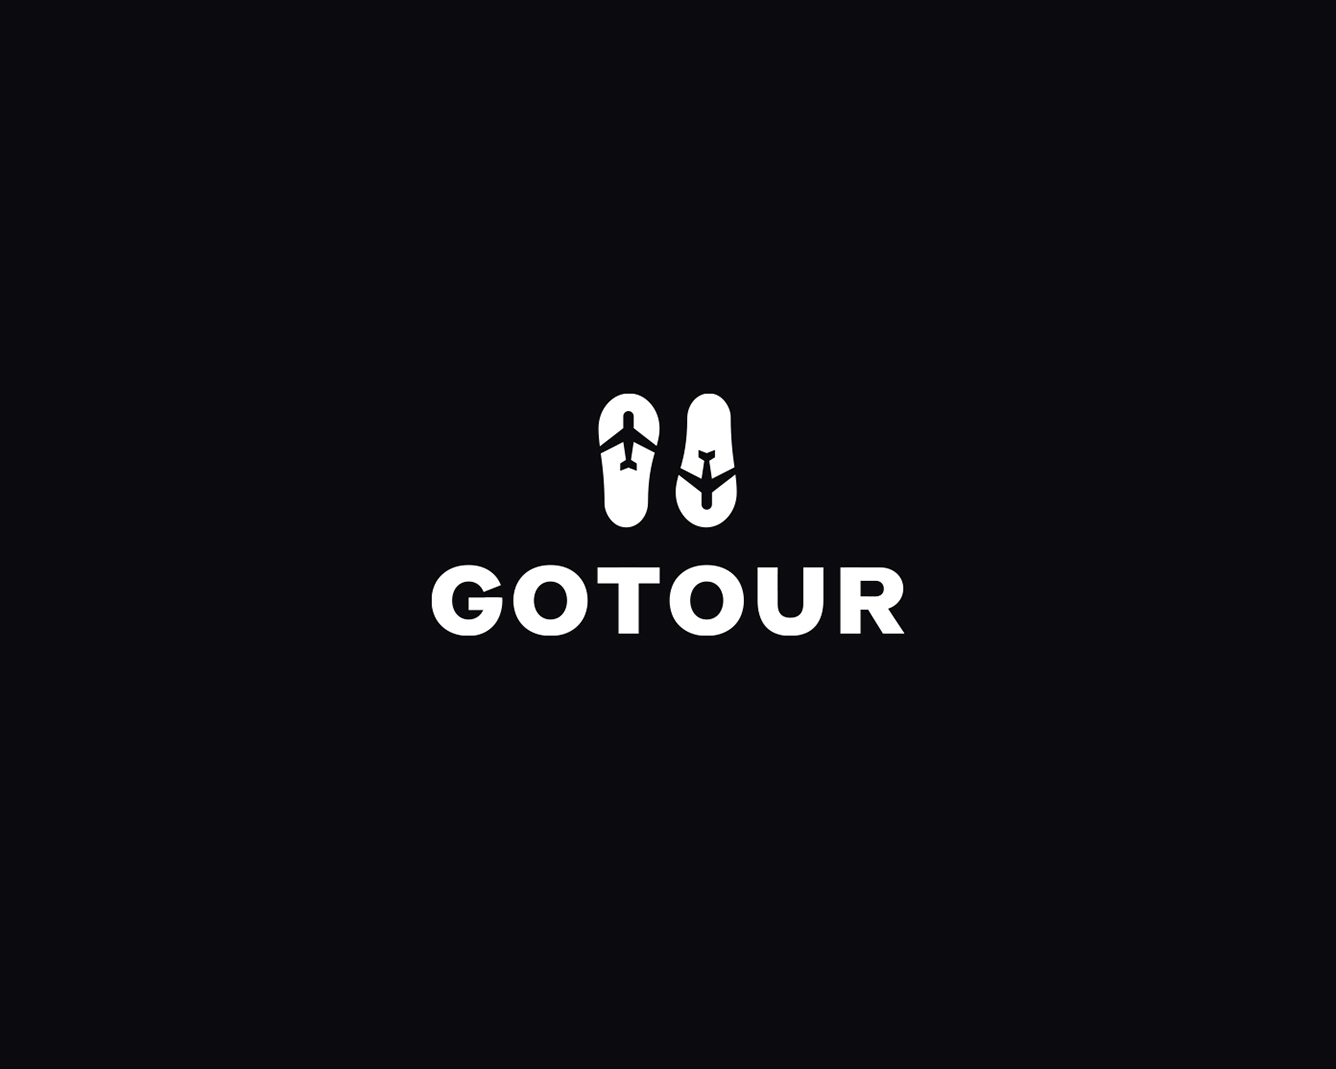 Designer creates logos with hidden meanings - 2